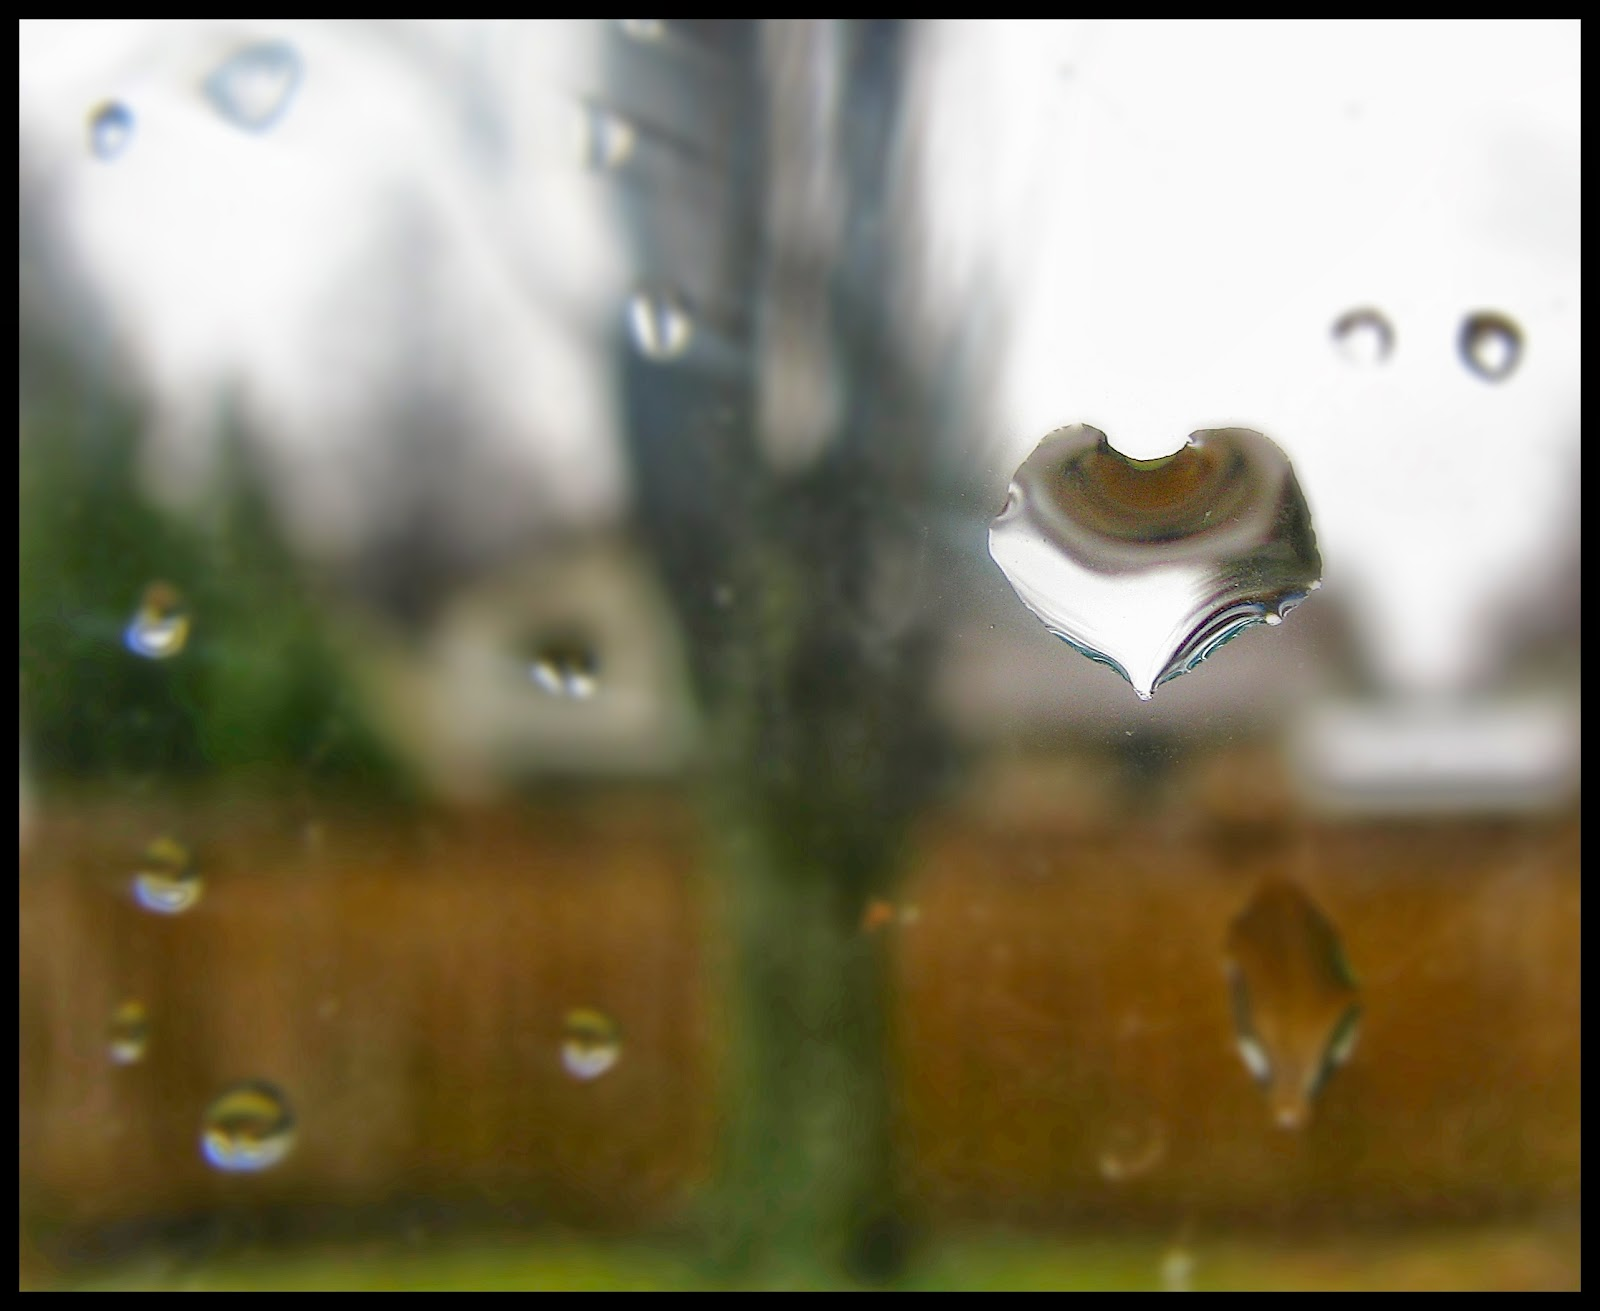 Love Wallpaper In Rain : Rain love,Rain Love Wallpaper Picture Gallery